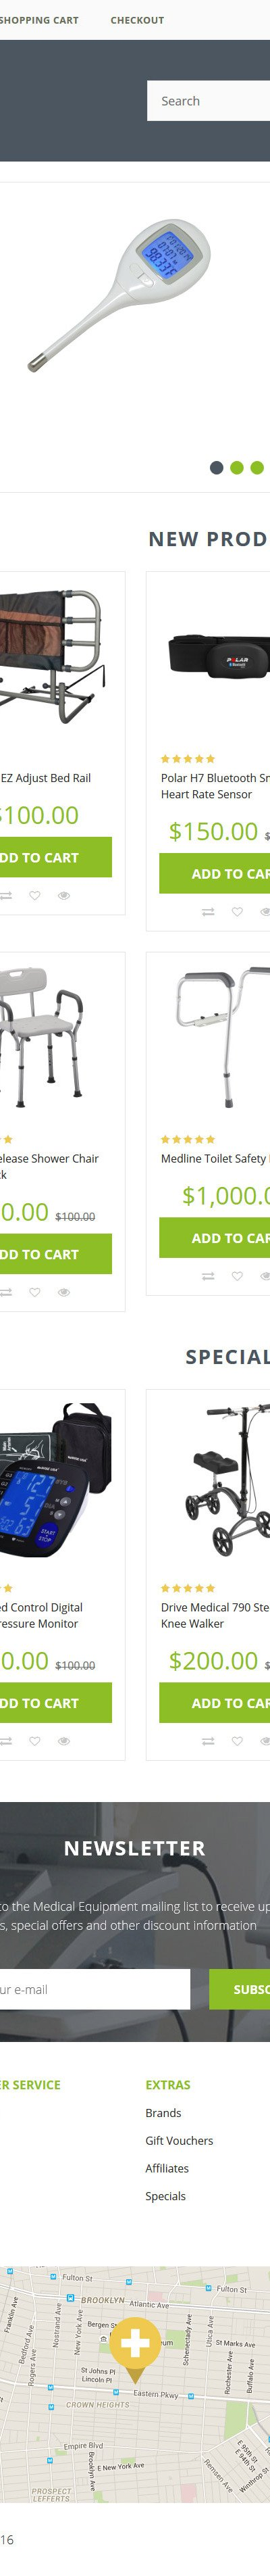 Medical Equipment OpenCart Template